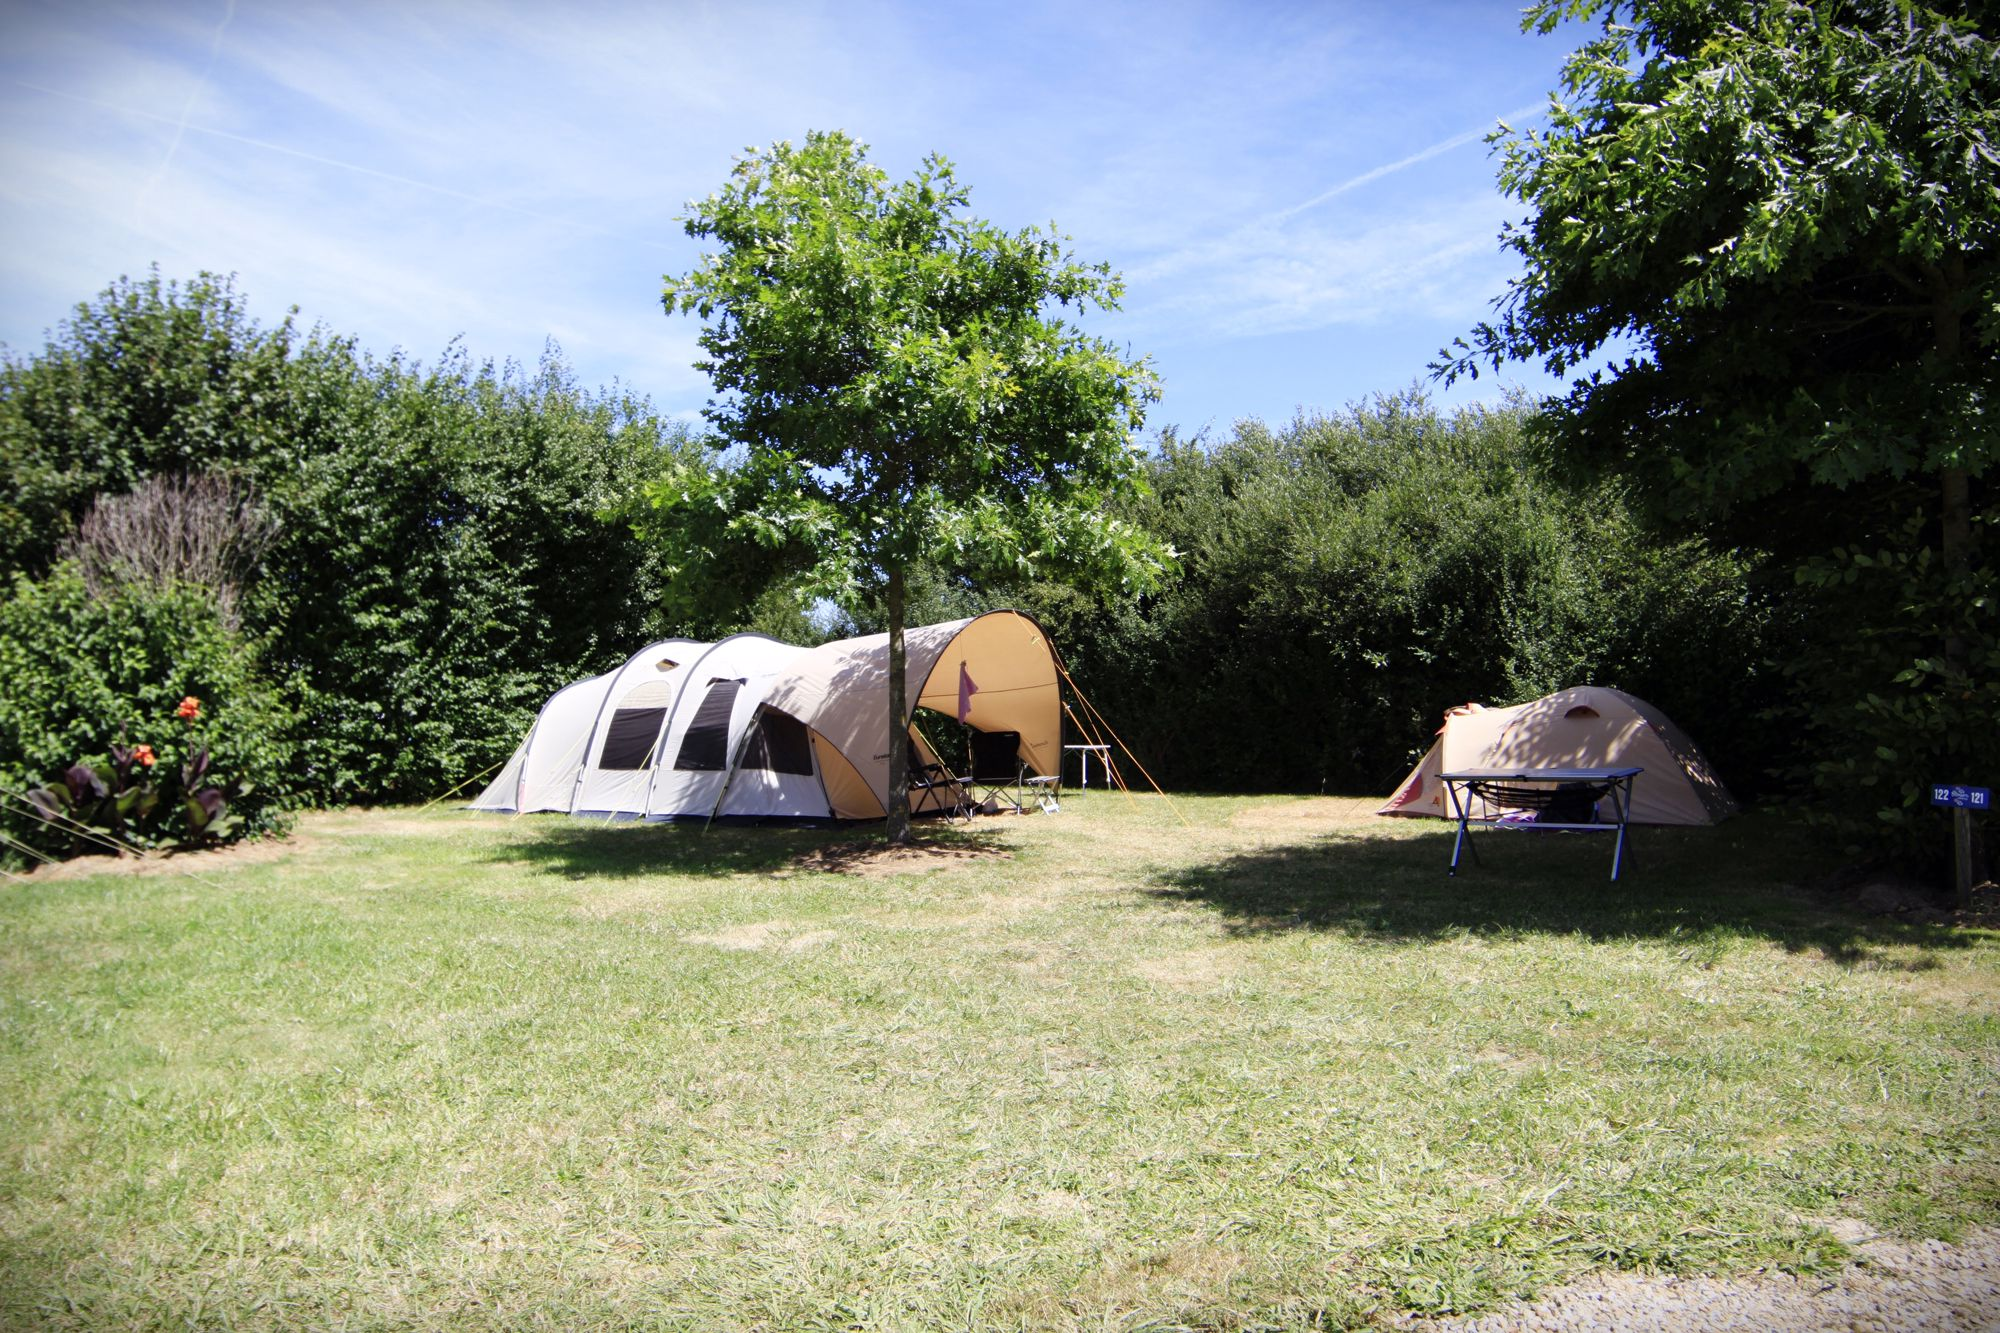 Glamping in Western France - glamping europe france west-france at Cool Camping